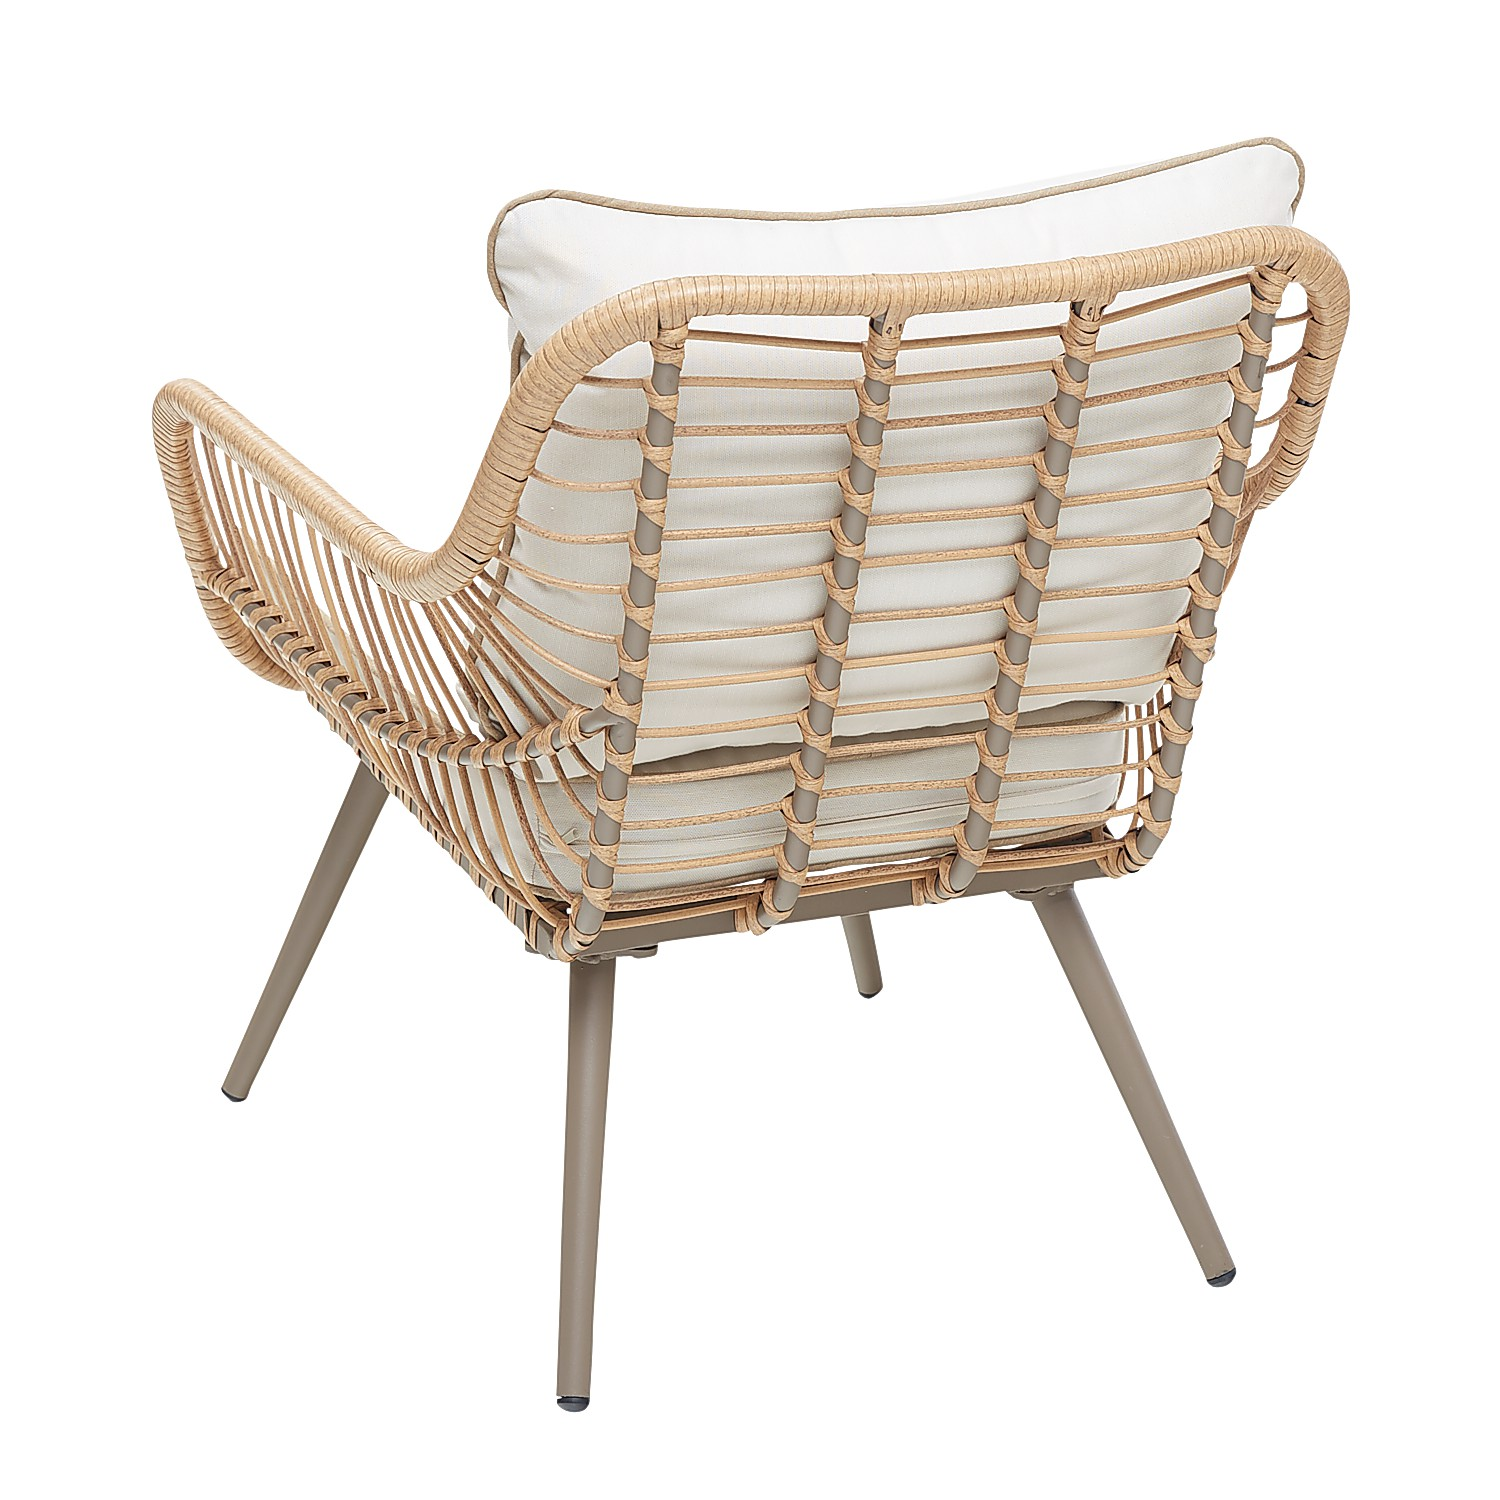 Natural Wicker Deluxe Chair with Ivory Cushions